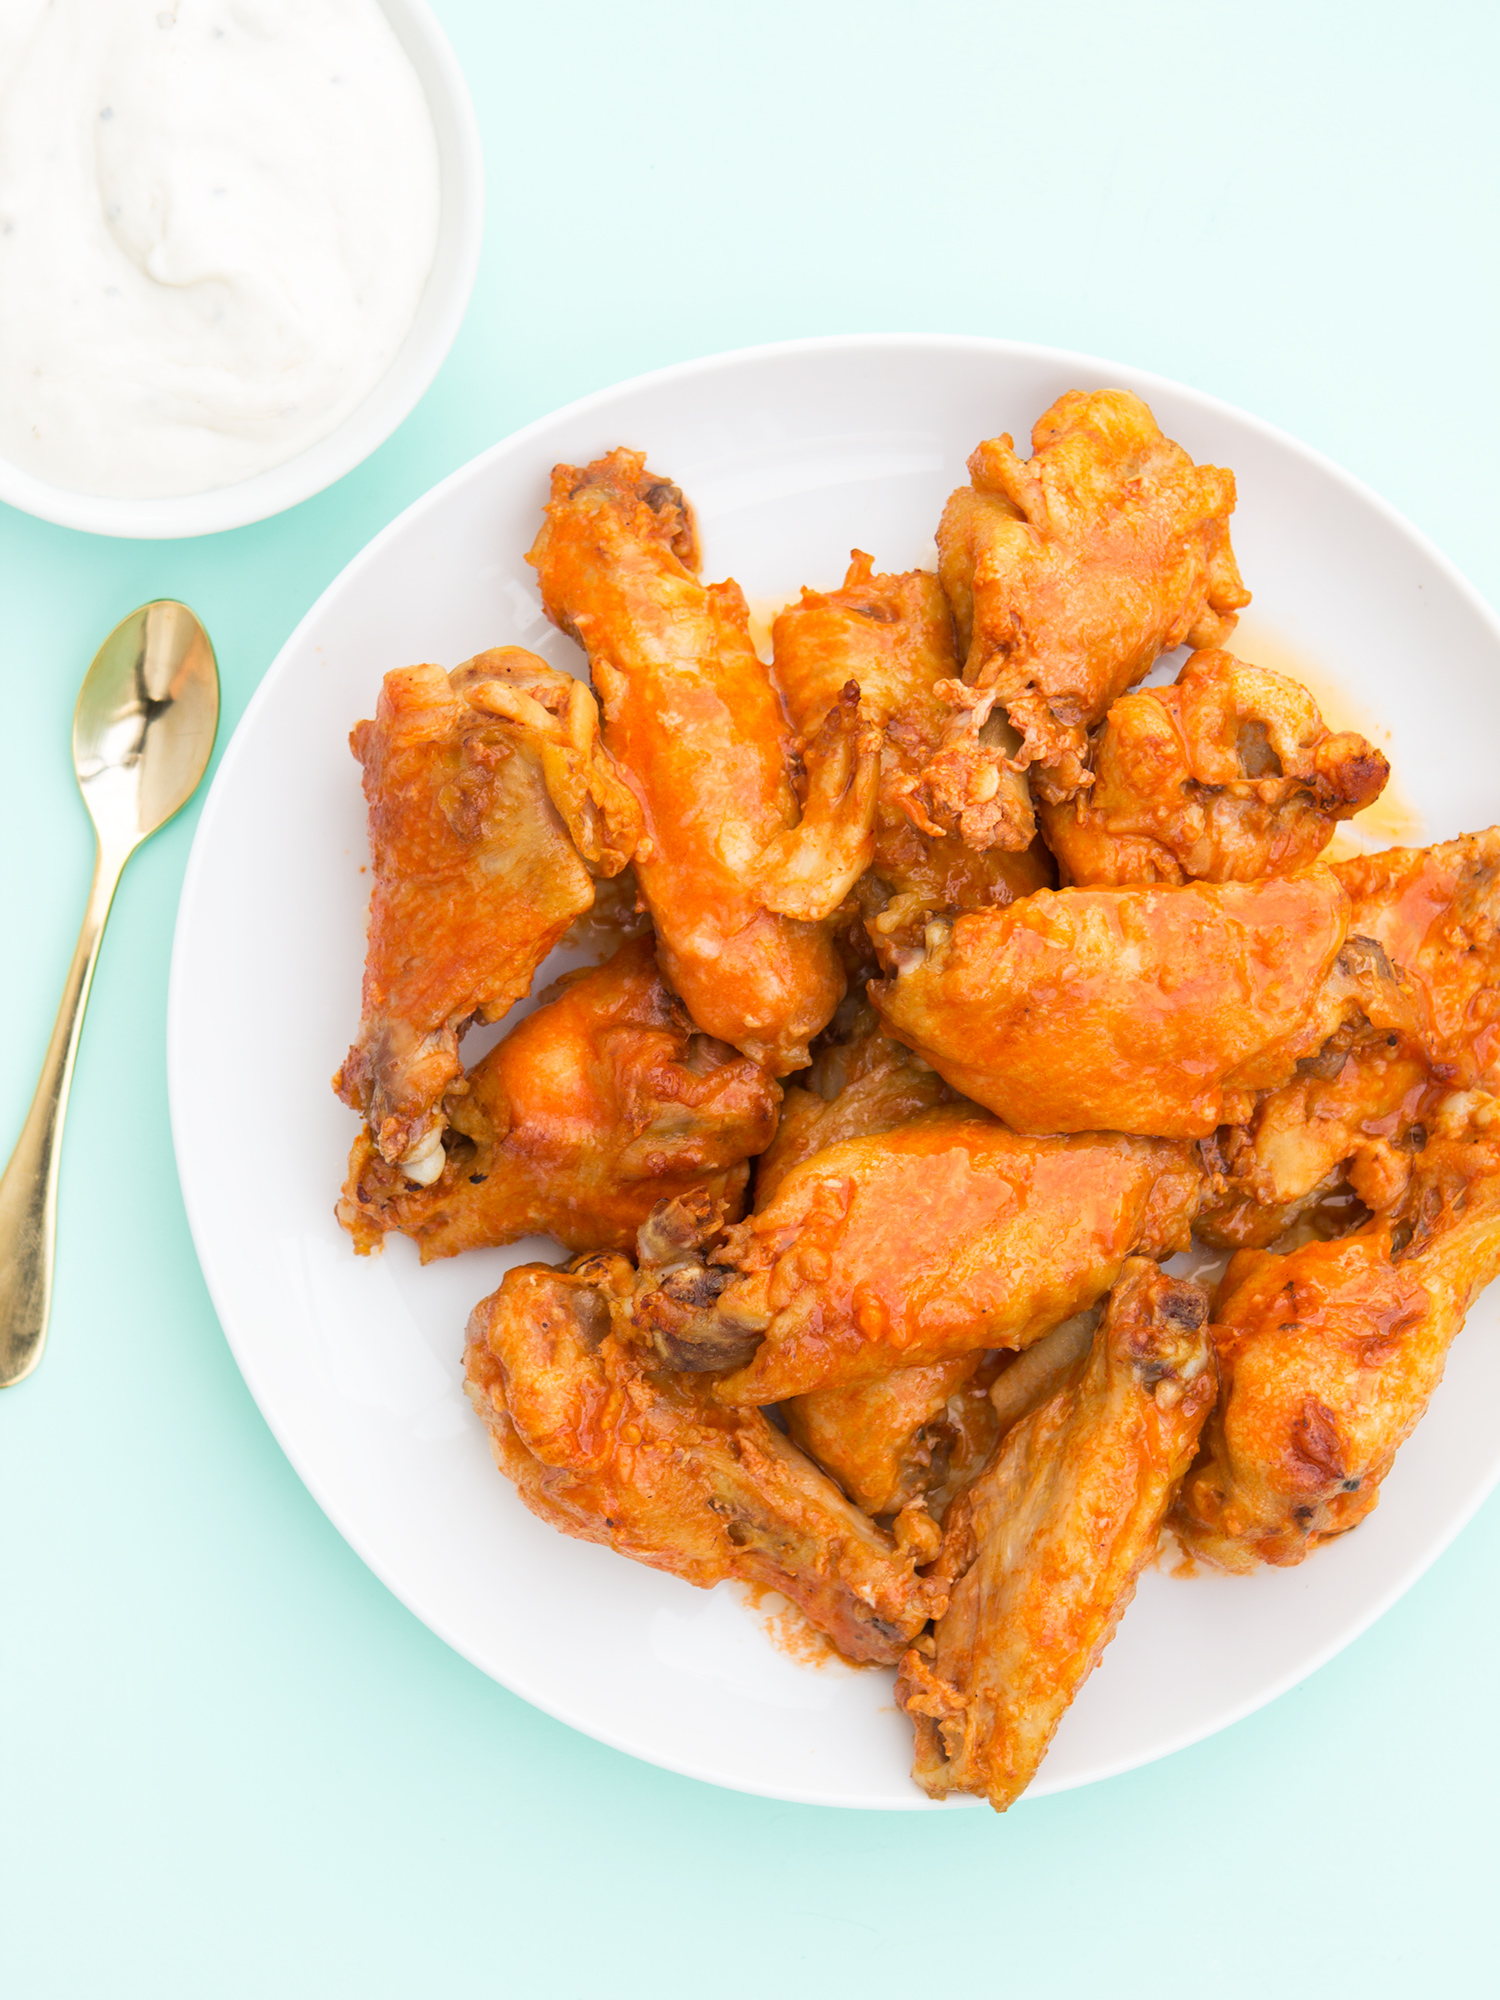 You're going to want to try these crispy oven baked chicken wings with homemade buffalo sauce. They are the perfect party food! You'll want to try the other 2 variations too!